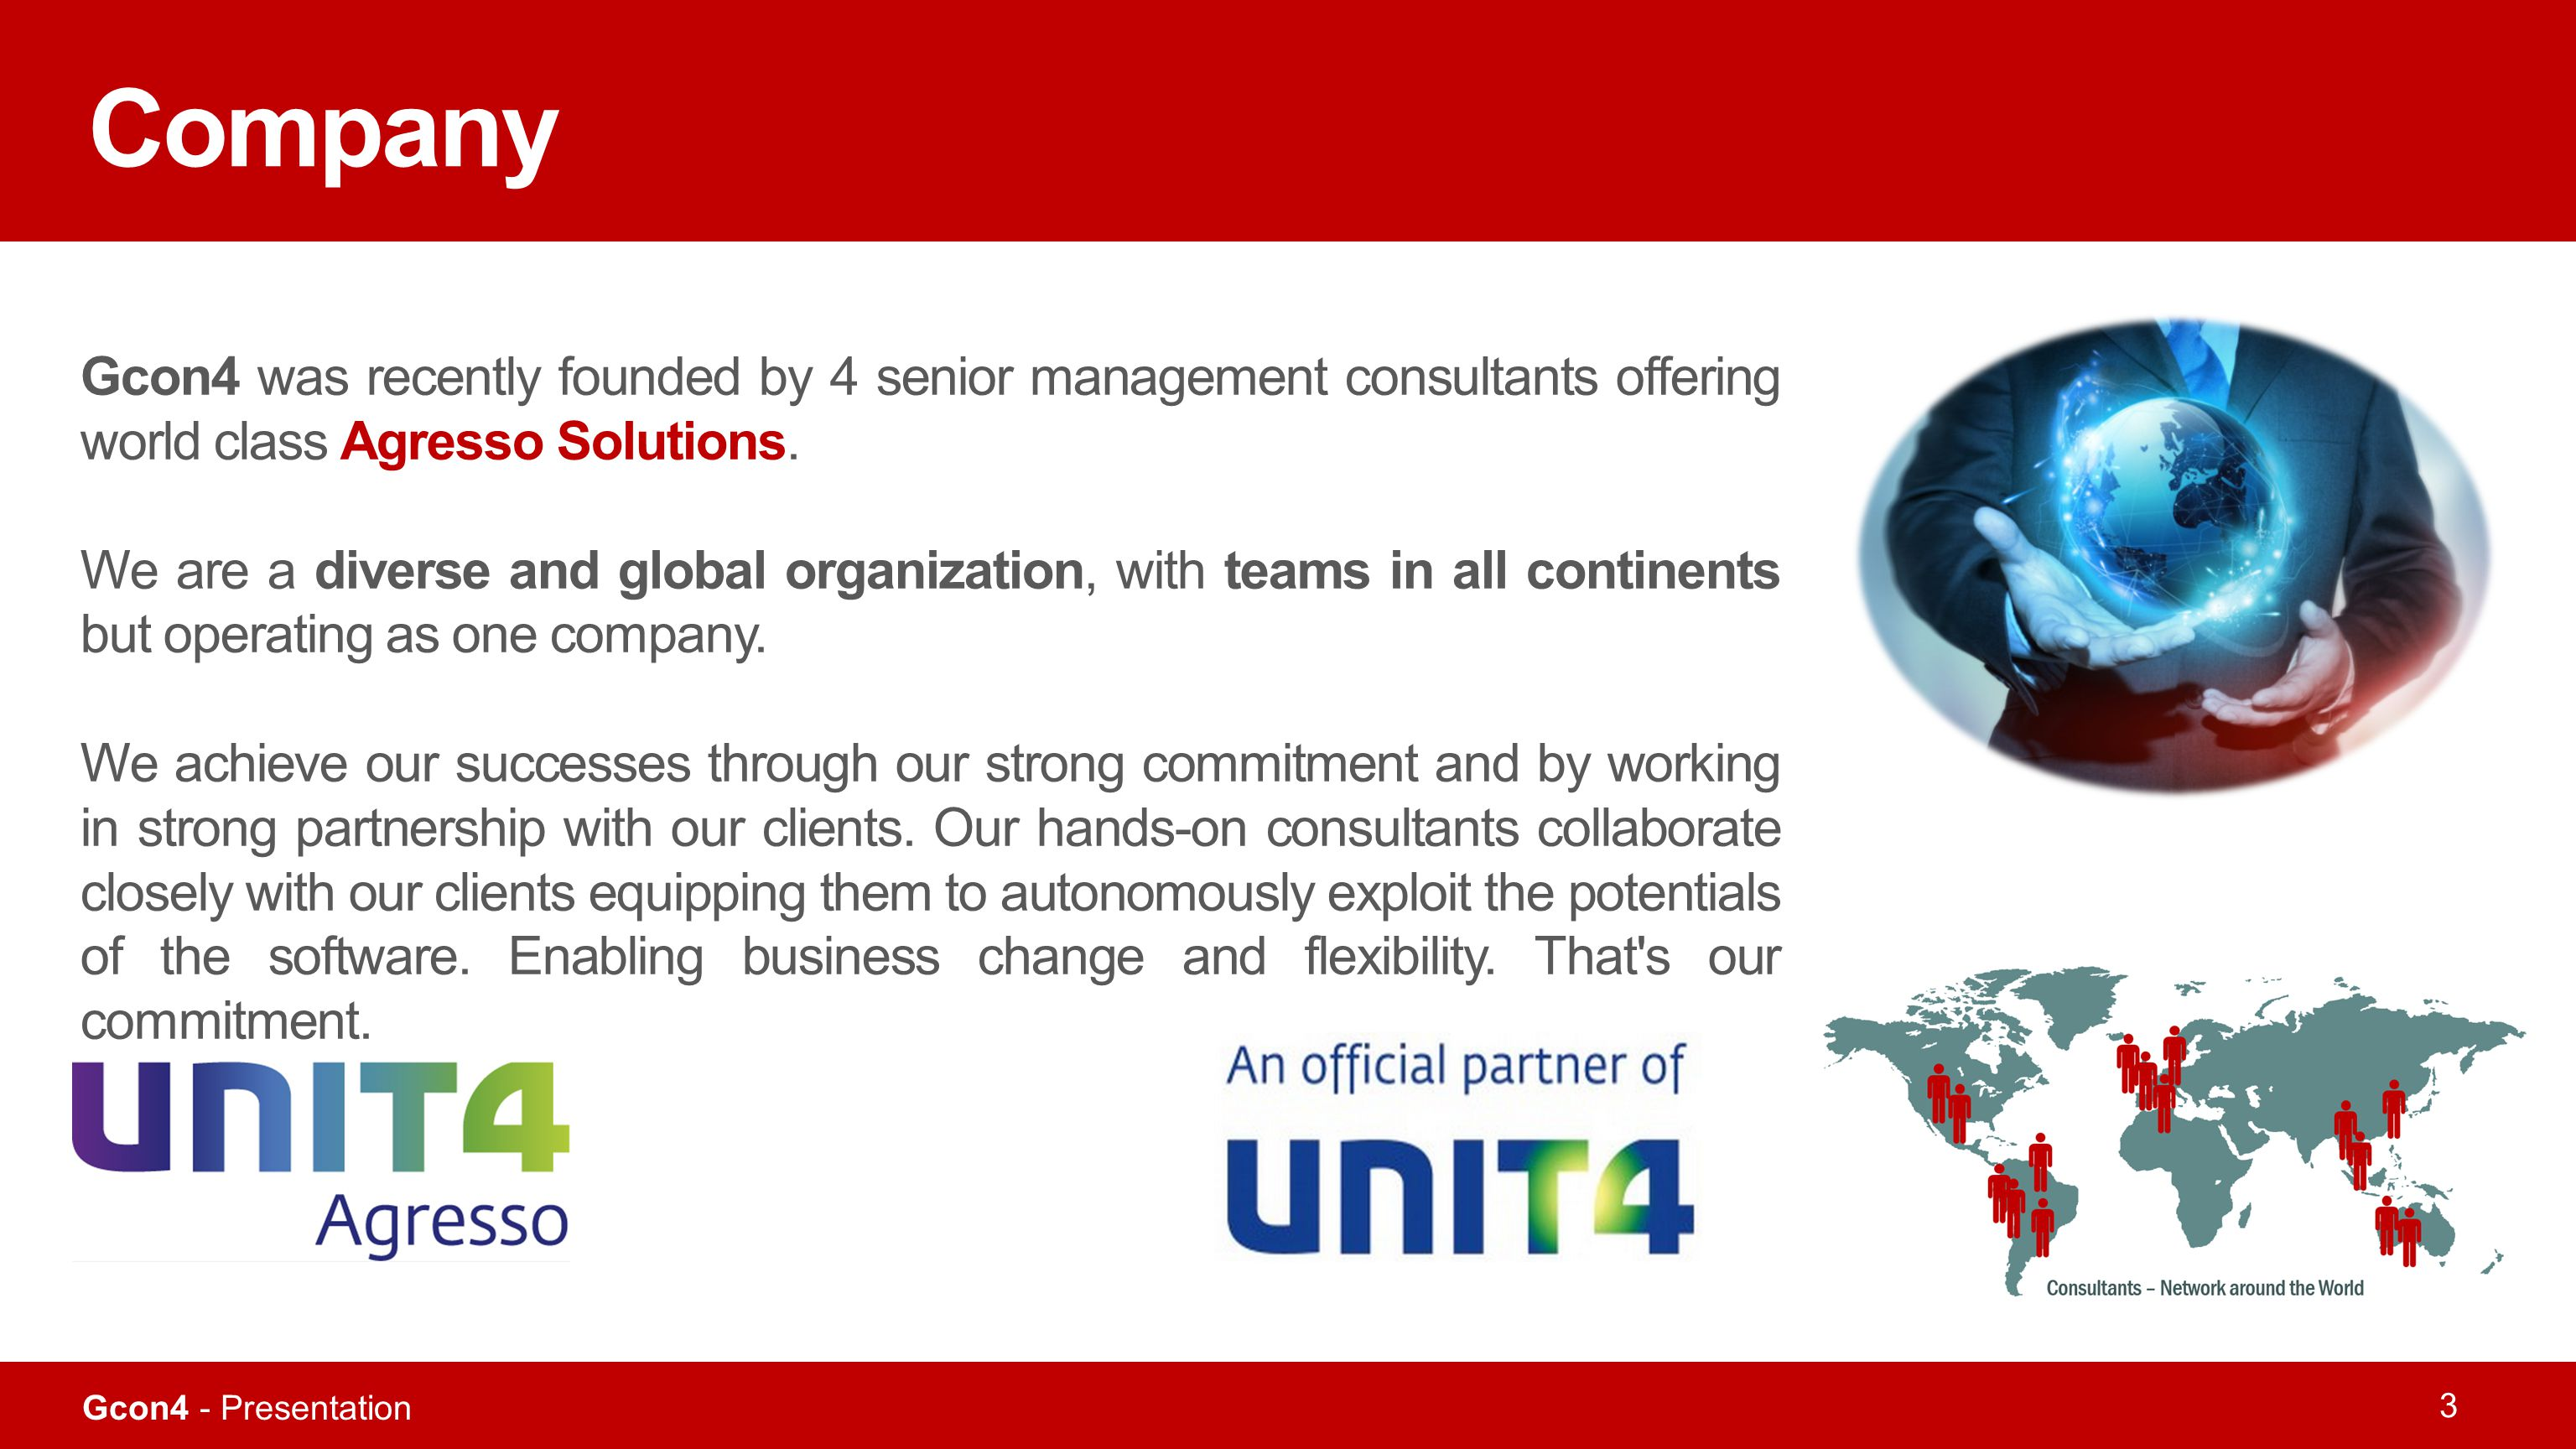 Company Gcon4 was recently founded by 4 senior management consultants offering world class Agresso Solutions.